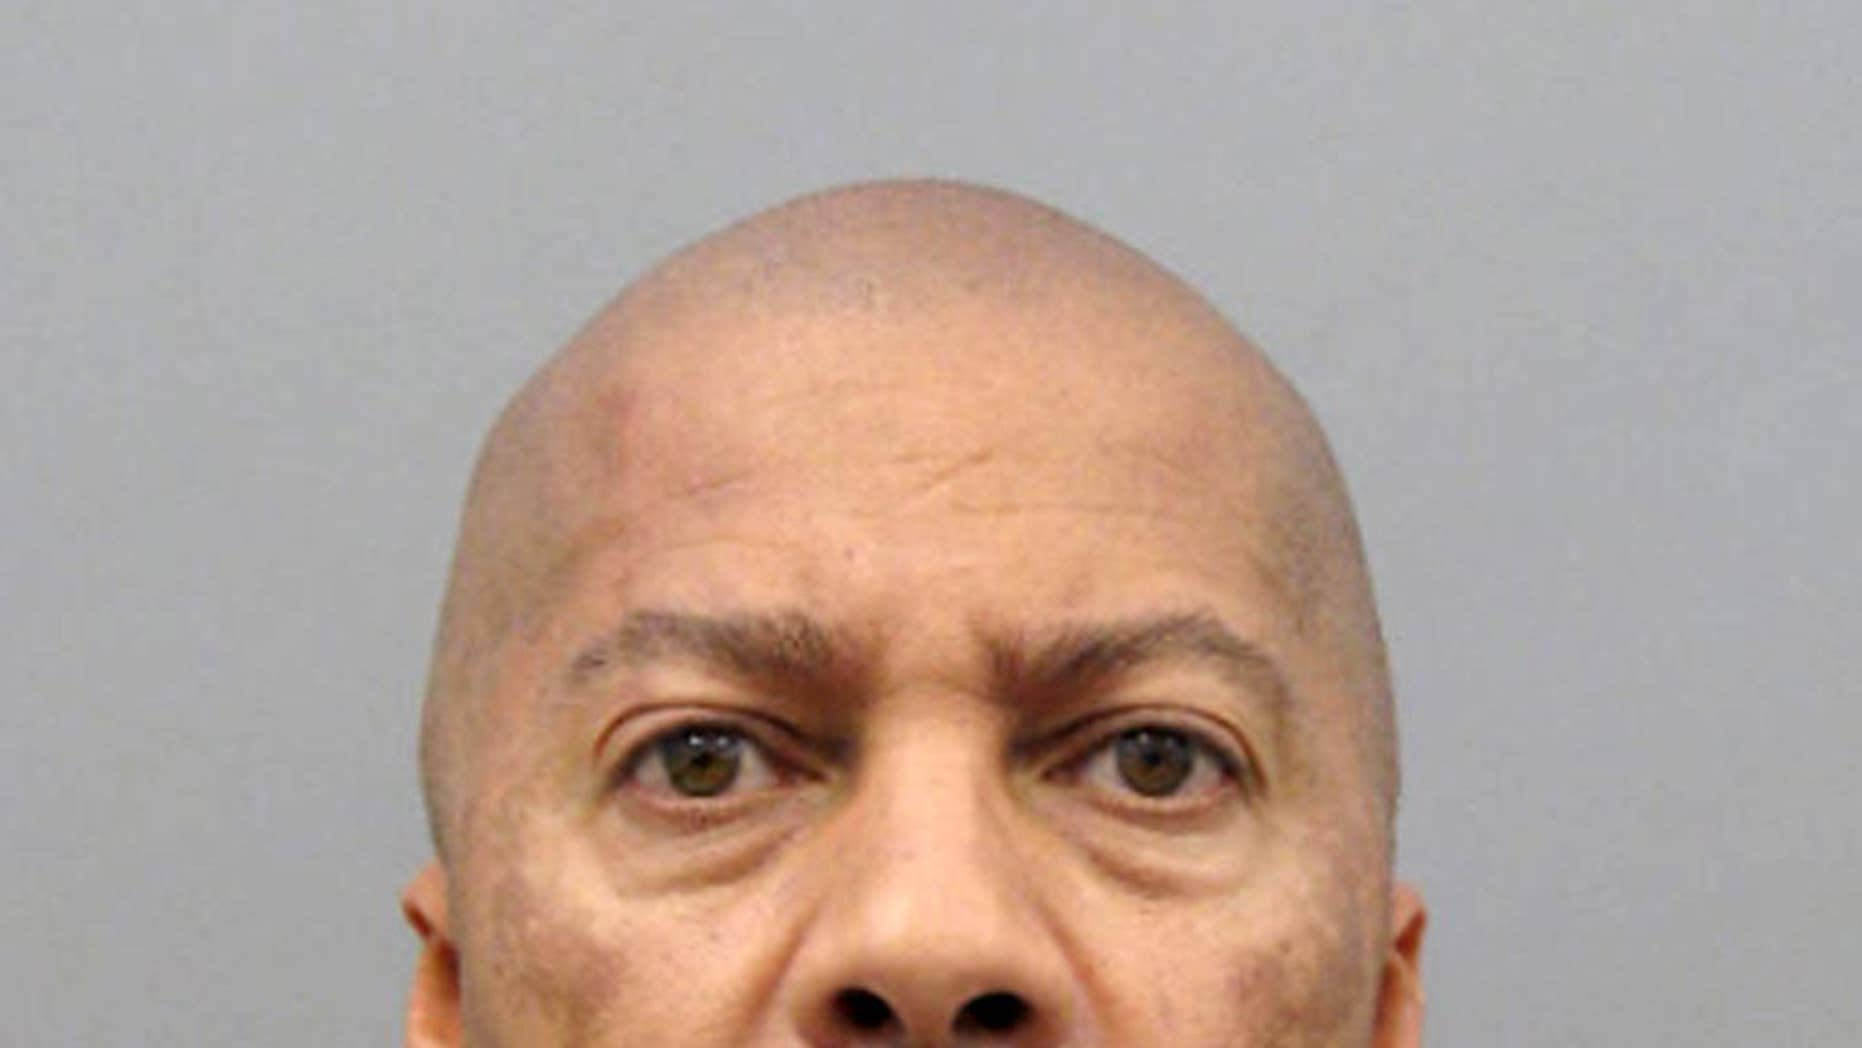 This undated law enforcement booking photo provided by the Henderson, Nev., Police Department shows Otis Holland. Alleged victims have said Holland, former church pastor, now 59, sexually abused them in vehicles including a limousine fitted with a bed, or at his home. After years of delay after his 2012 capture in Tijuana, Mexico, trial is set to begin Monday, Jan. 4, 2016 in Las Vegas. (Henderson Police Department via AP)